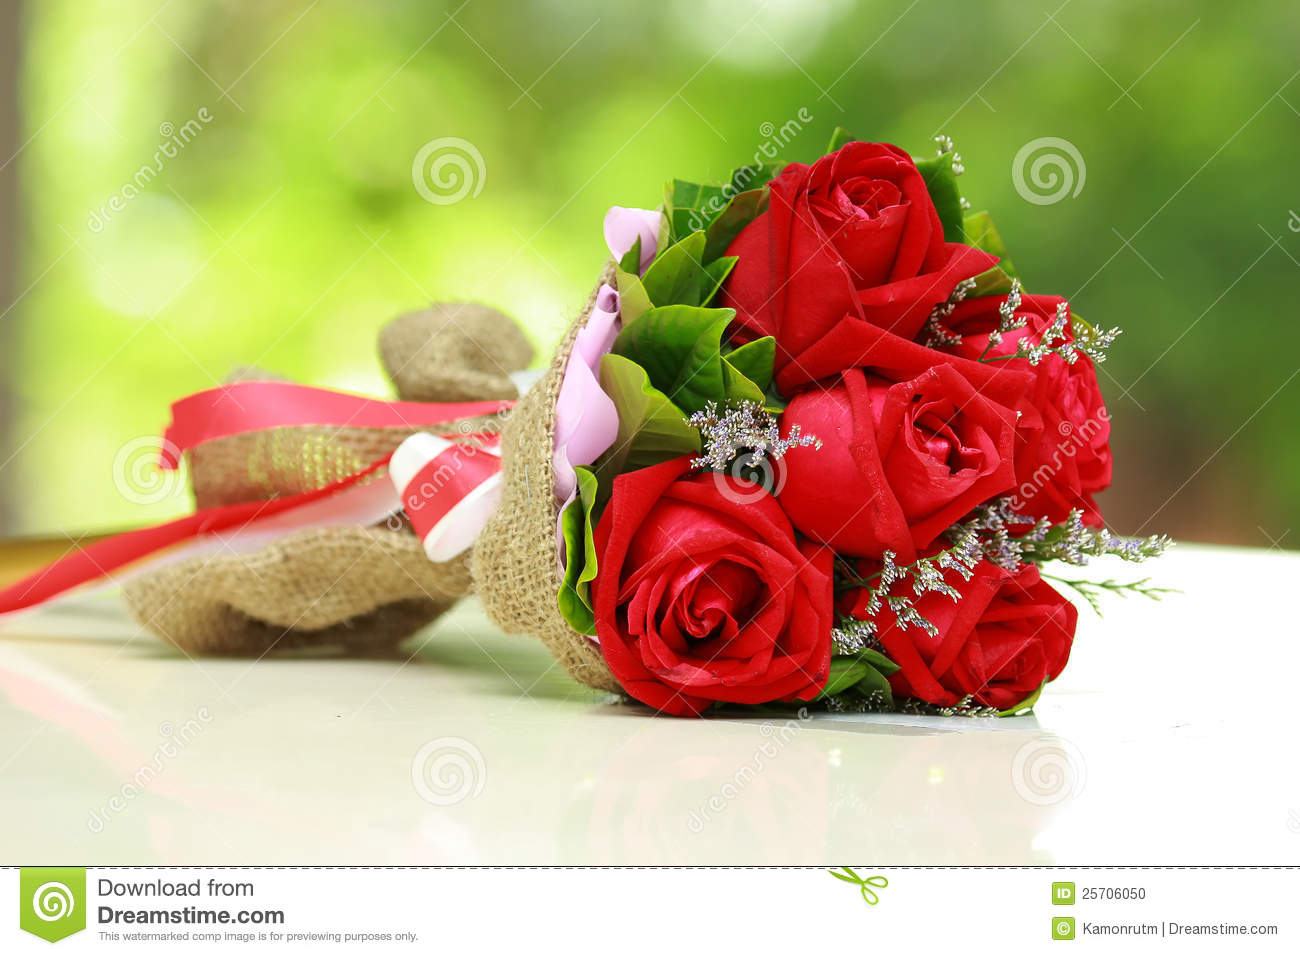 Beautiful Bouquet Of Bright Red Flowers Stock Photo - Image of ...